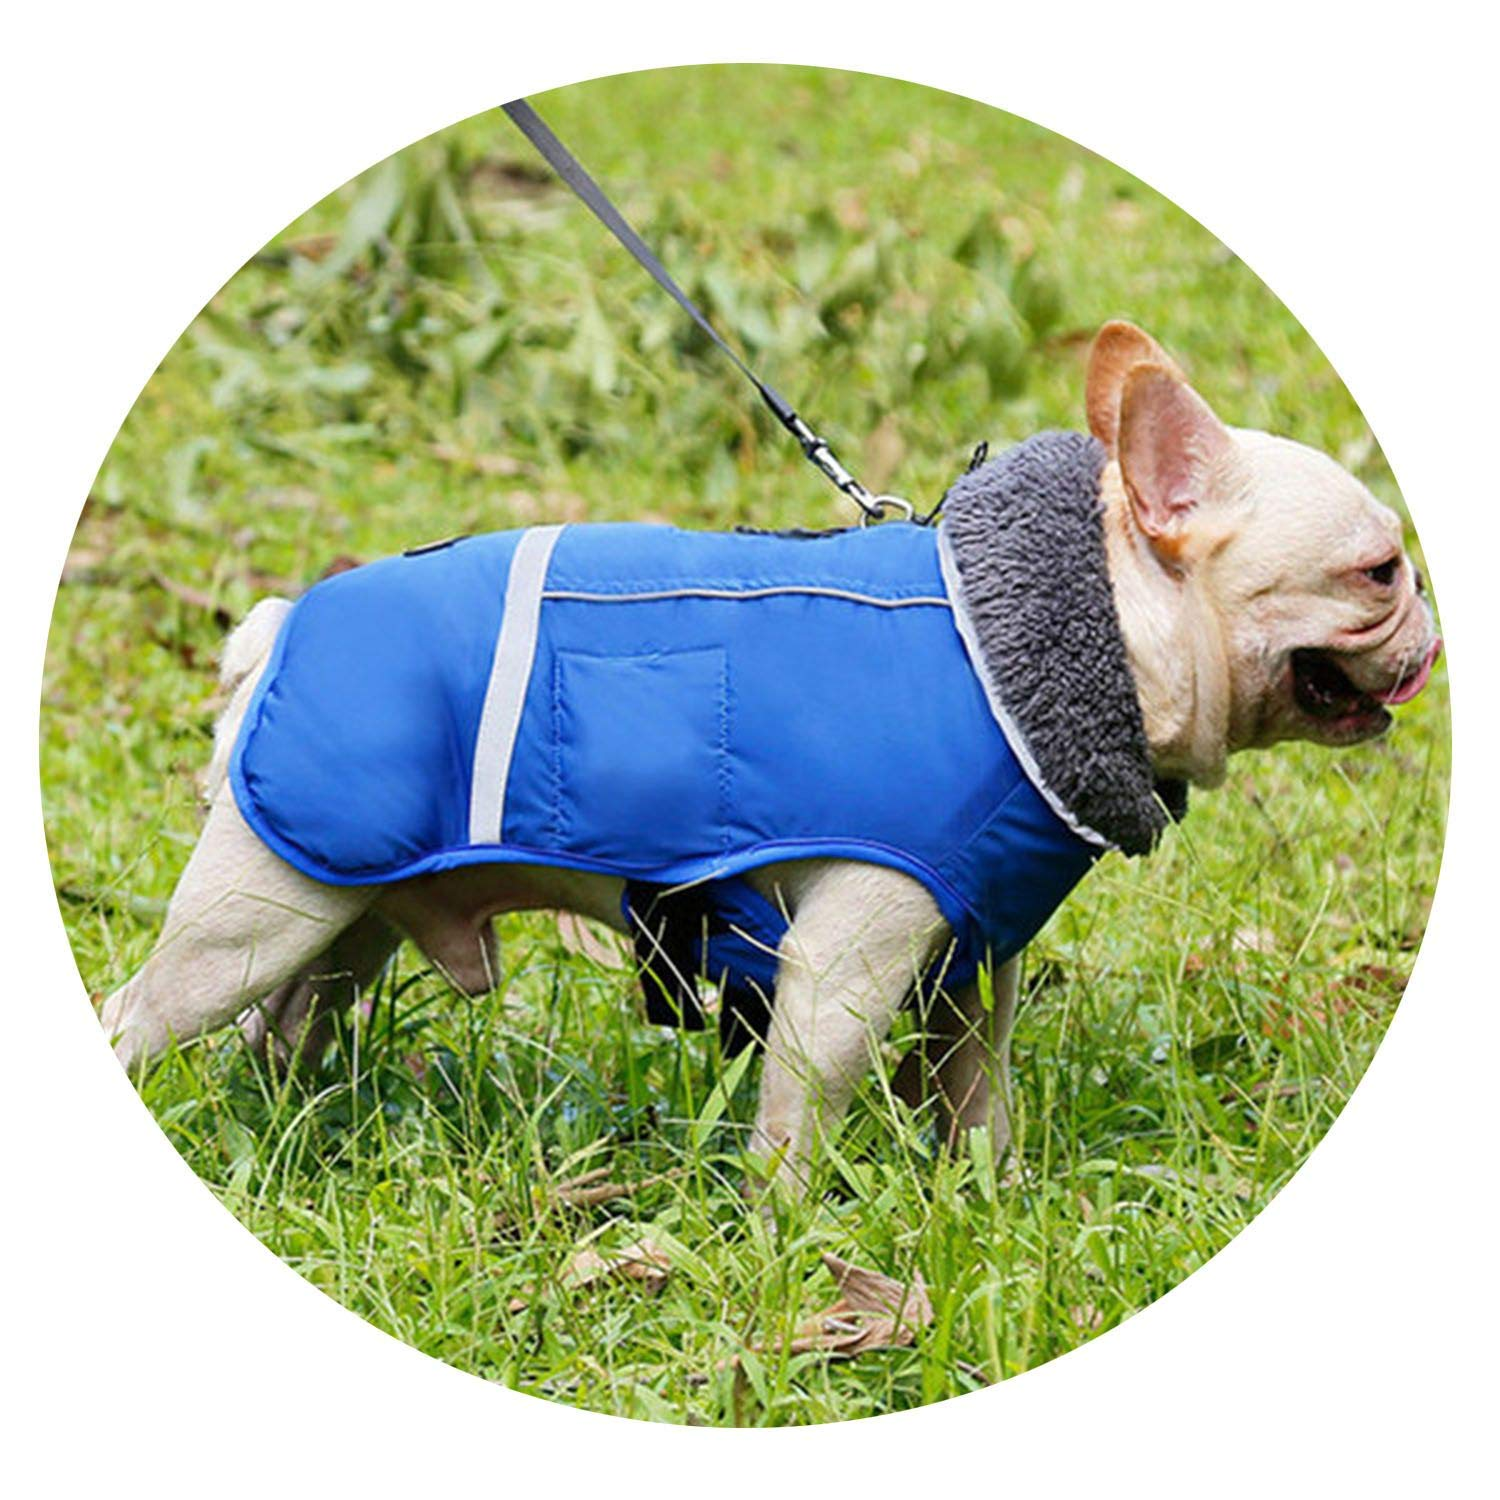 bluee S bluee S Dog Clothes Winter Waterproof Outdoor Pet Dog Jacket Thicken Warm Dog Coat for Small Medium Large Dog Adjustable Pet Clothes 3XL,bluee,S